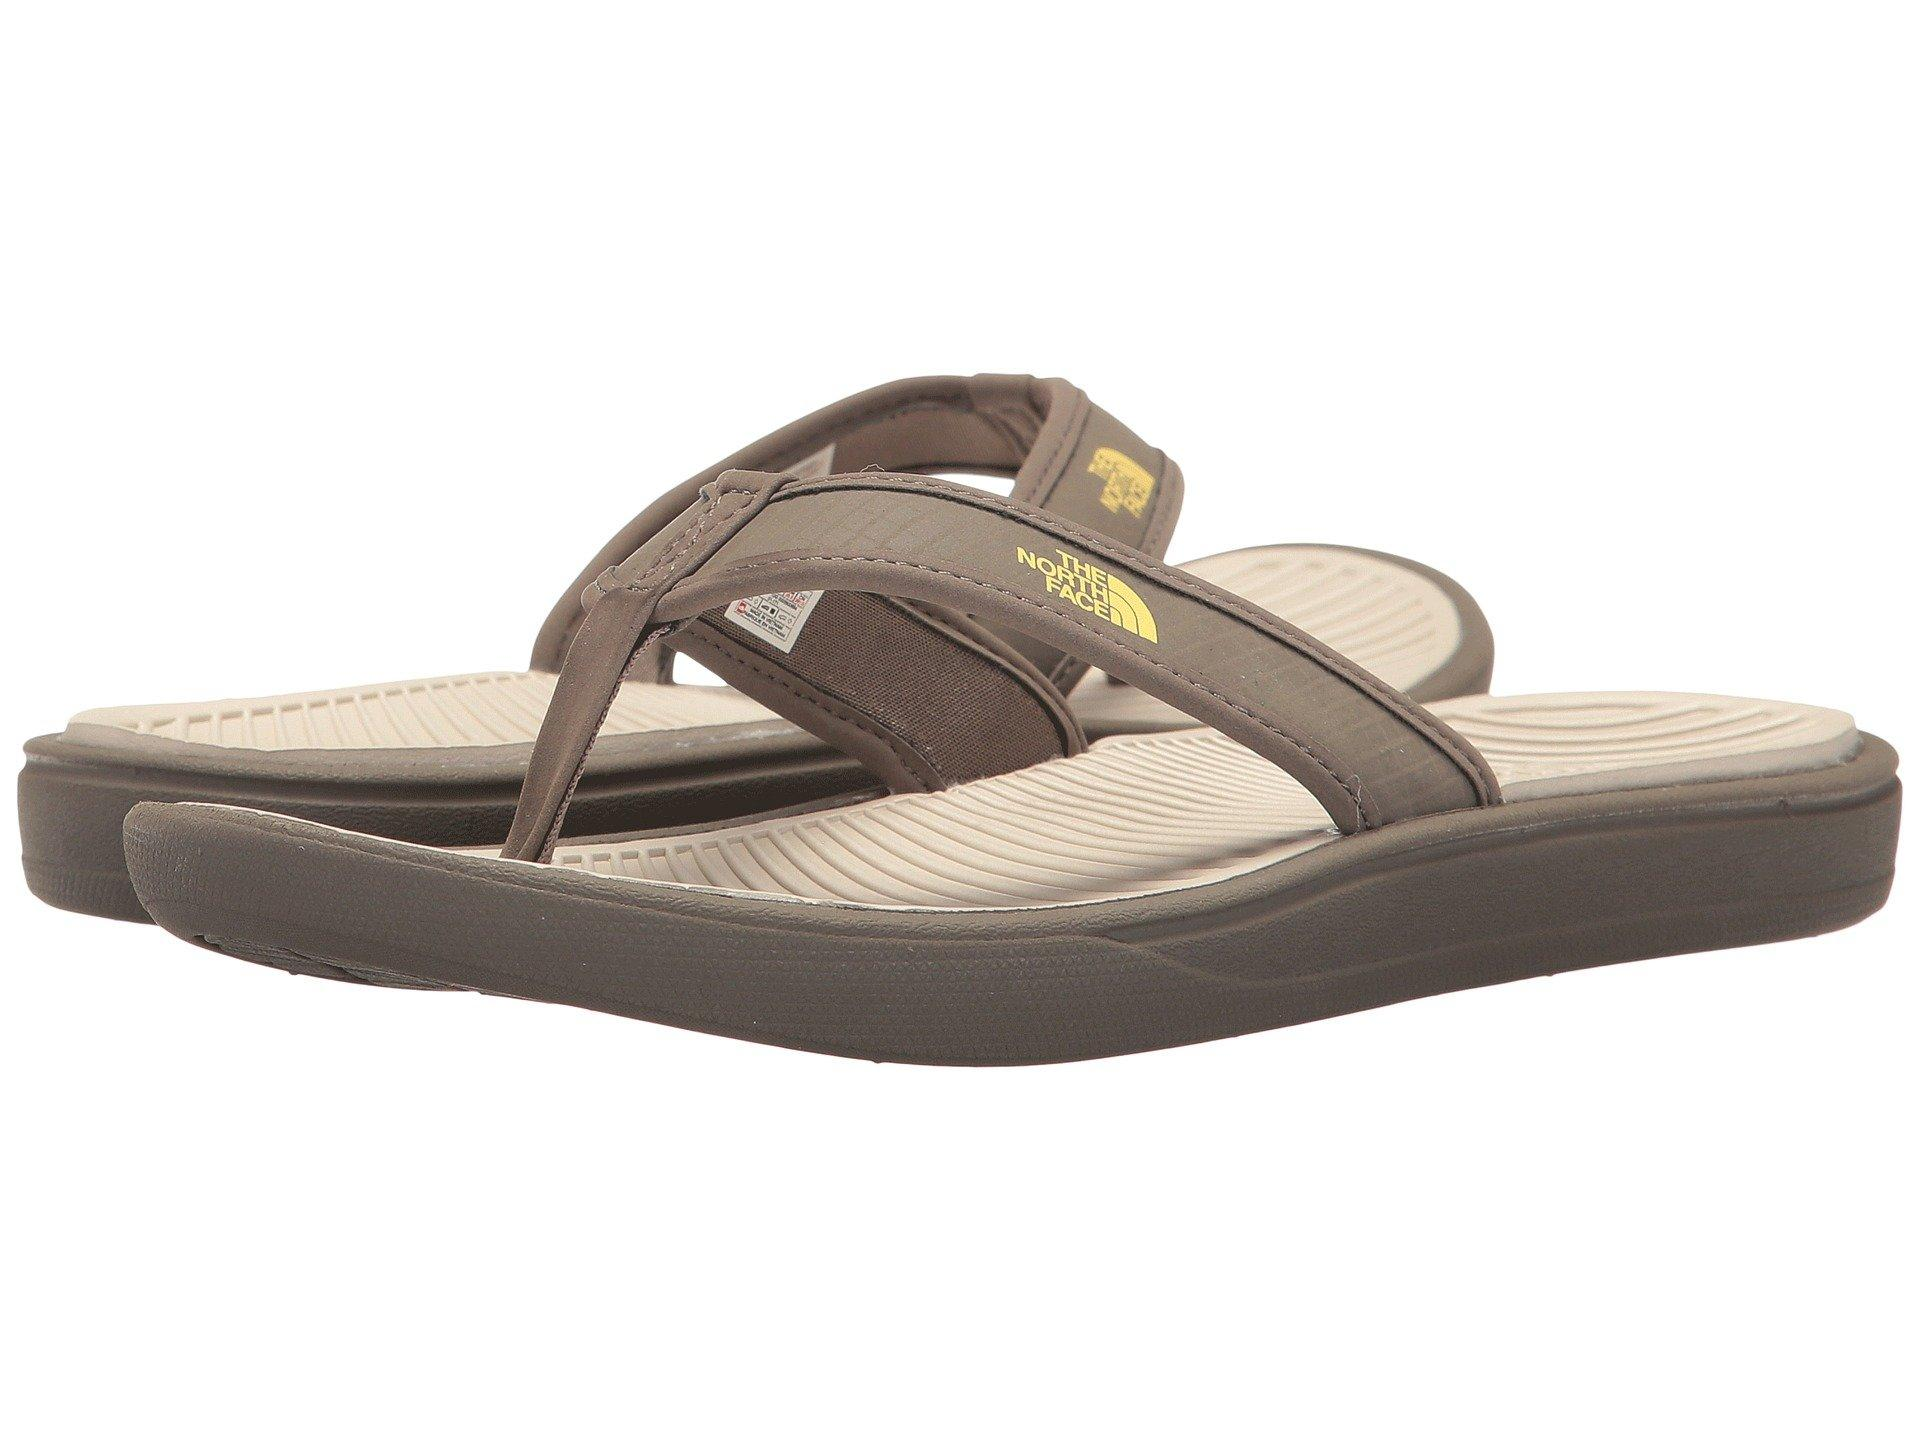 726cf444550e The North Face Base Camp Lite Flip Flop In Falcon Brown/Rainy Day Ivory (